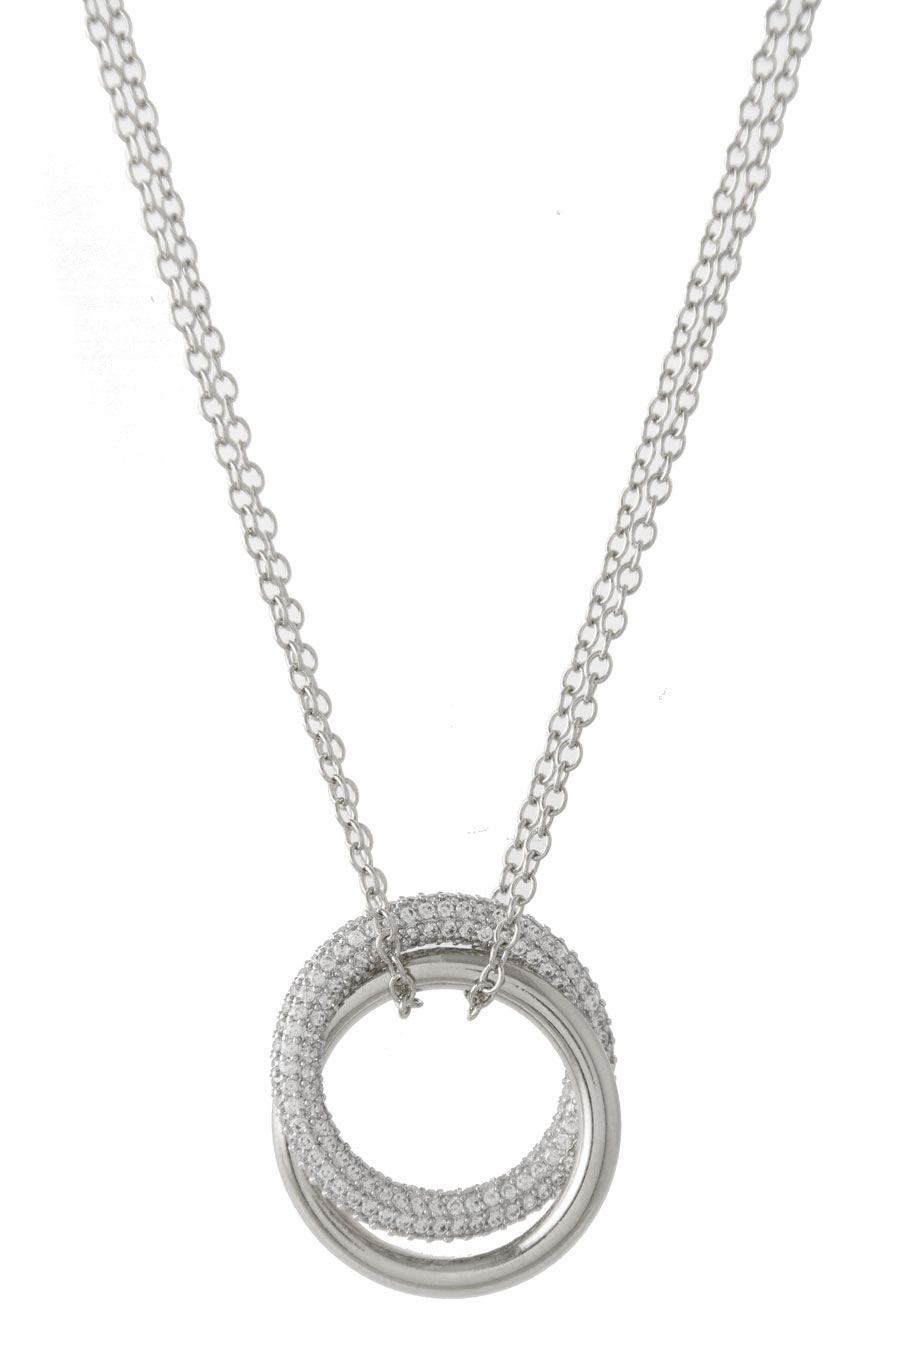 PAVE DOUBLE CHAIN NECKLACE - orangeshine.com